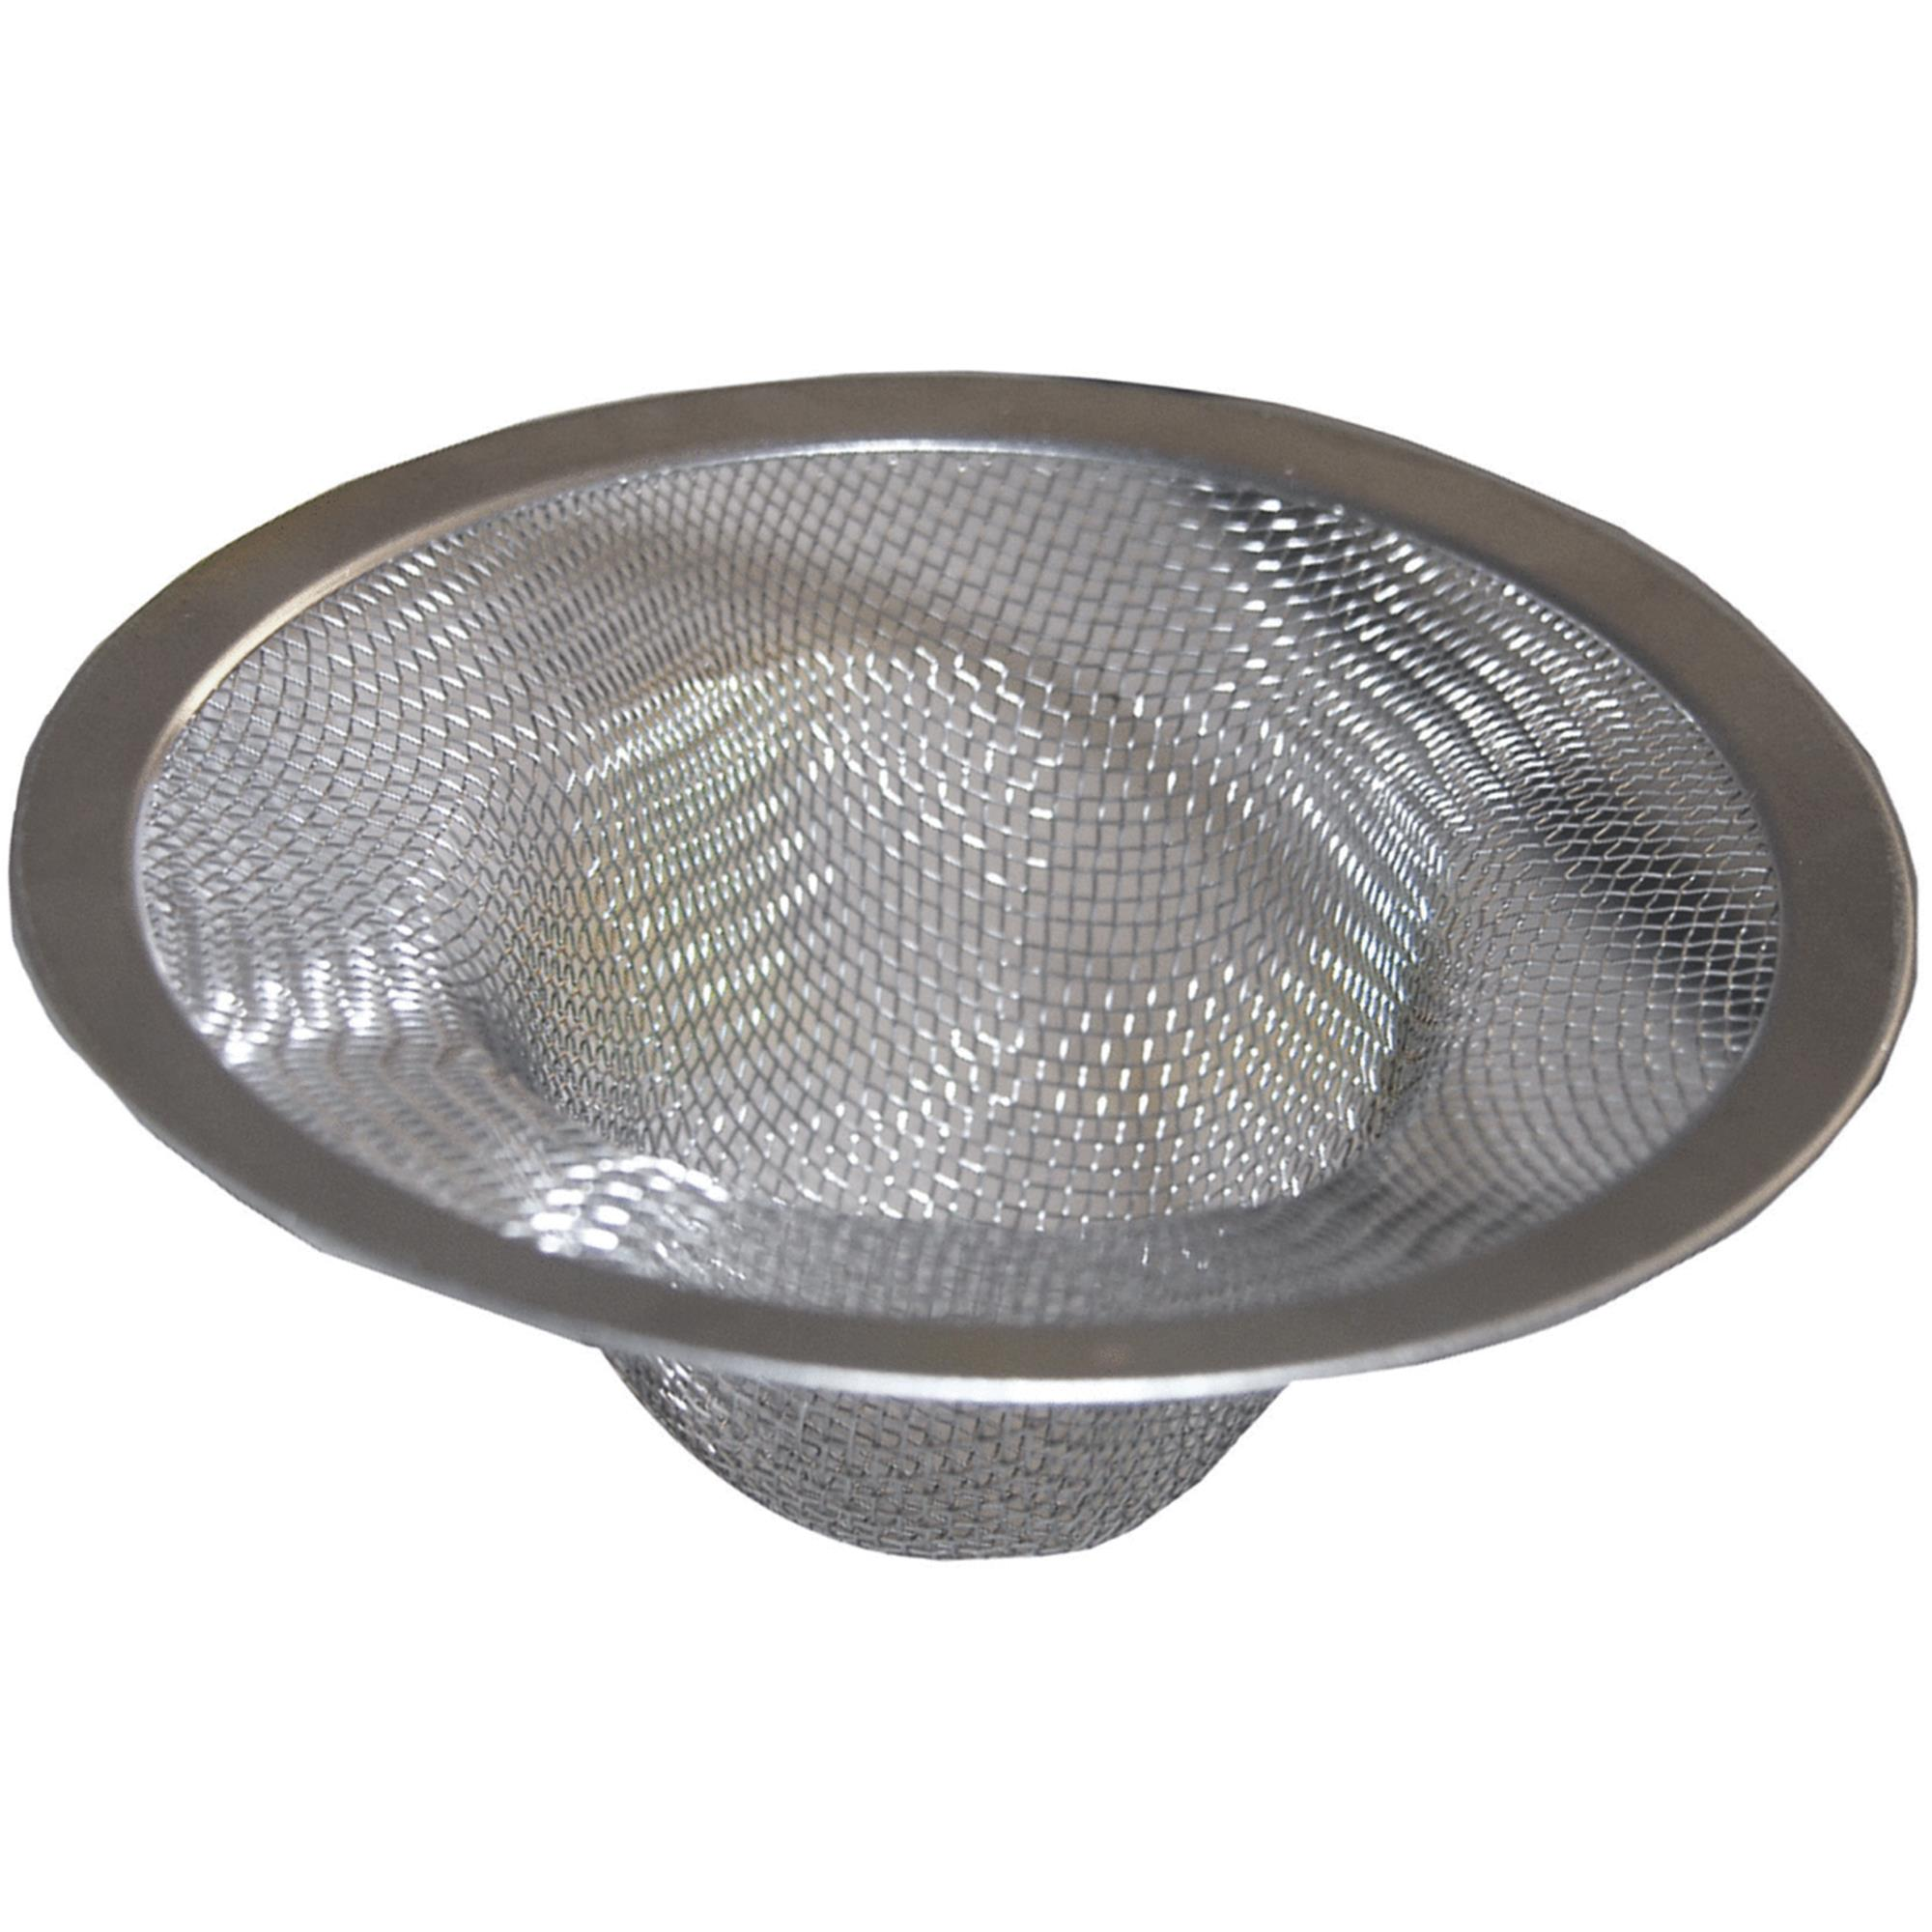 kitchen sink mesh strainer lasco mesh kitchen sink strainer cup walmart 5858